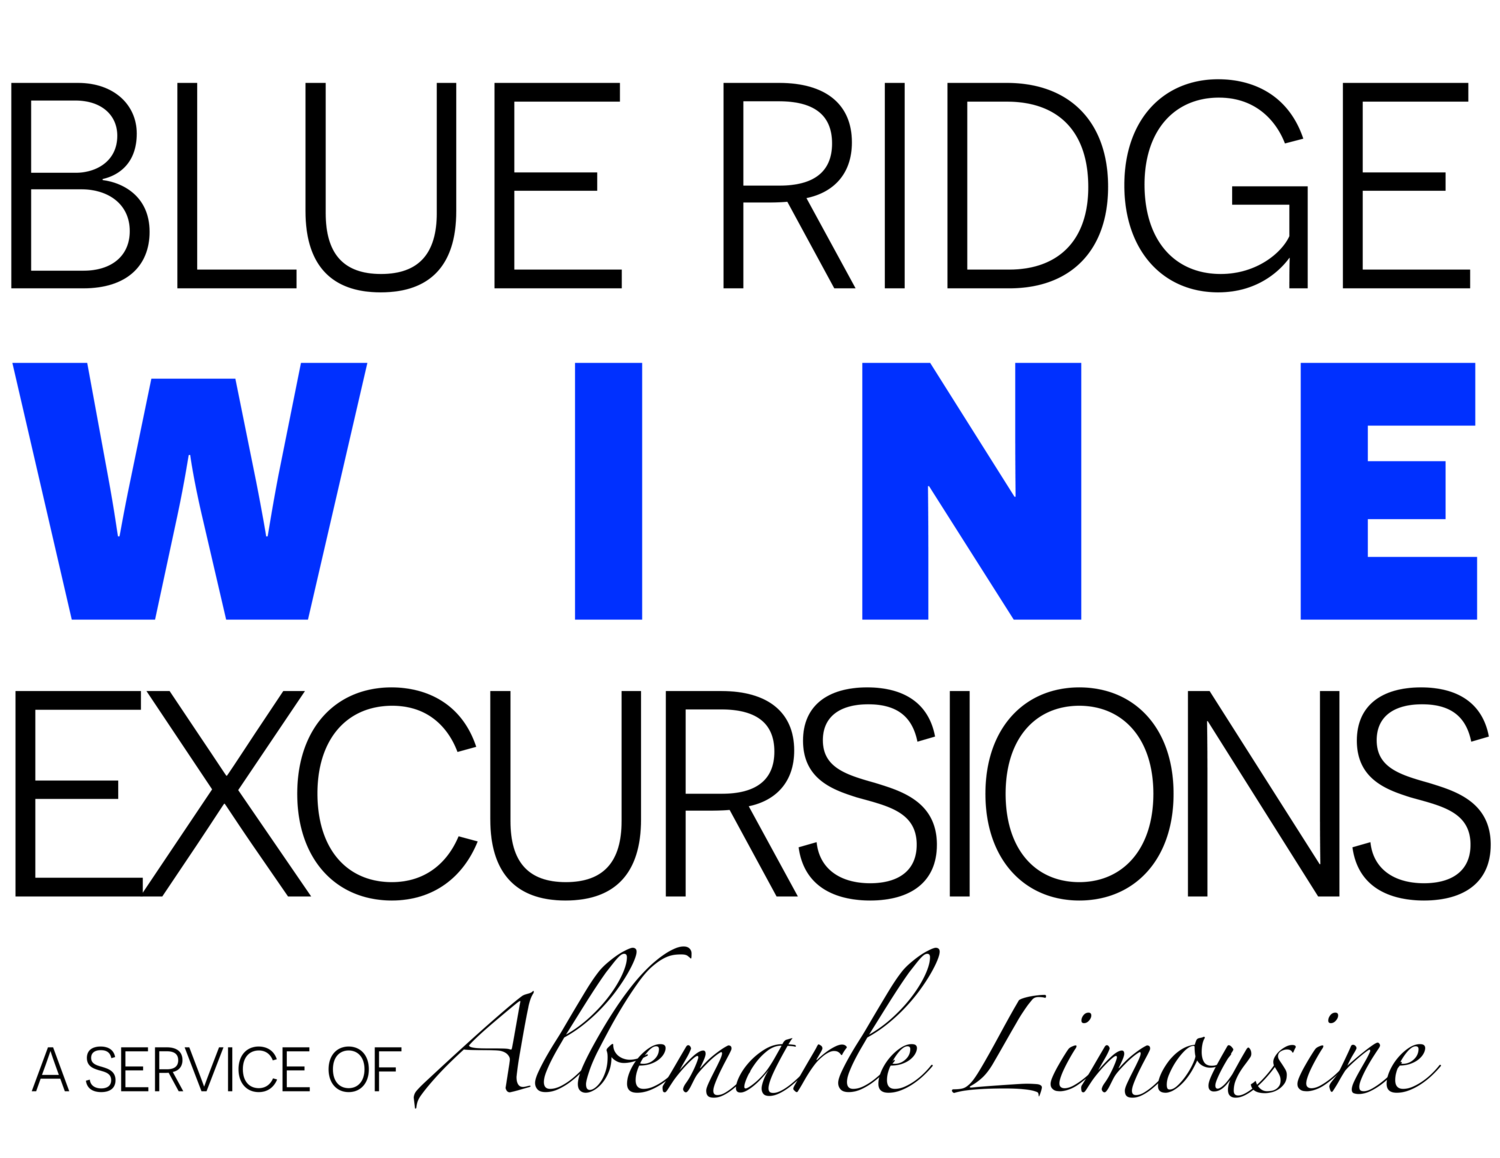 Charlottesville Wine Tours | Blue Ridge Wine Excursions | Virginia Monticello Winery Tours